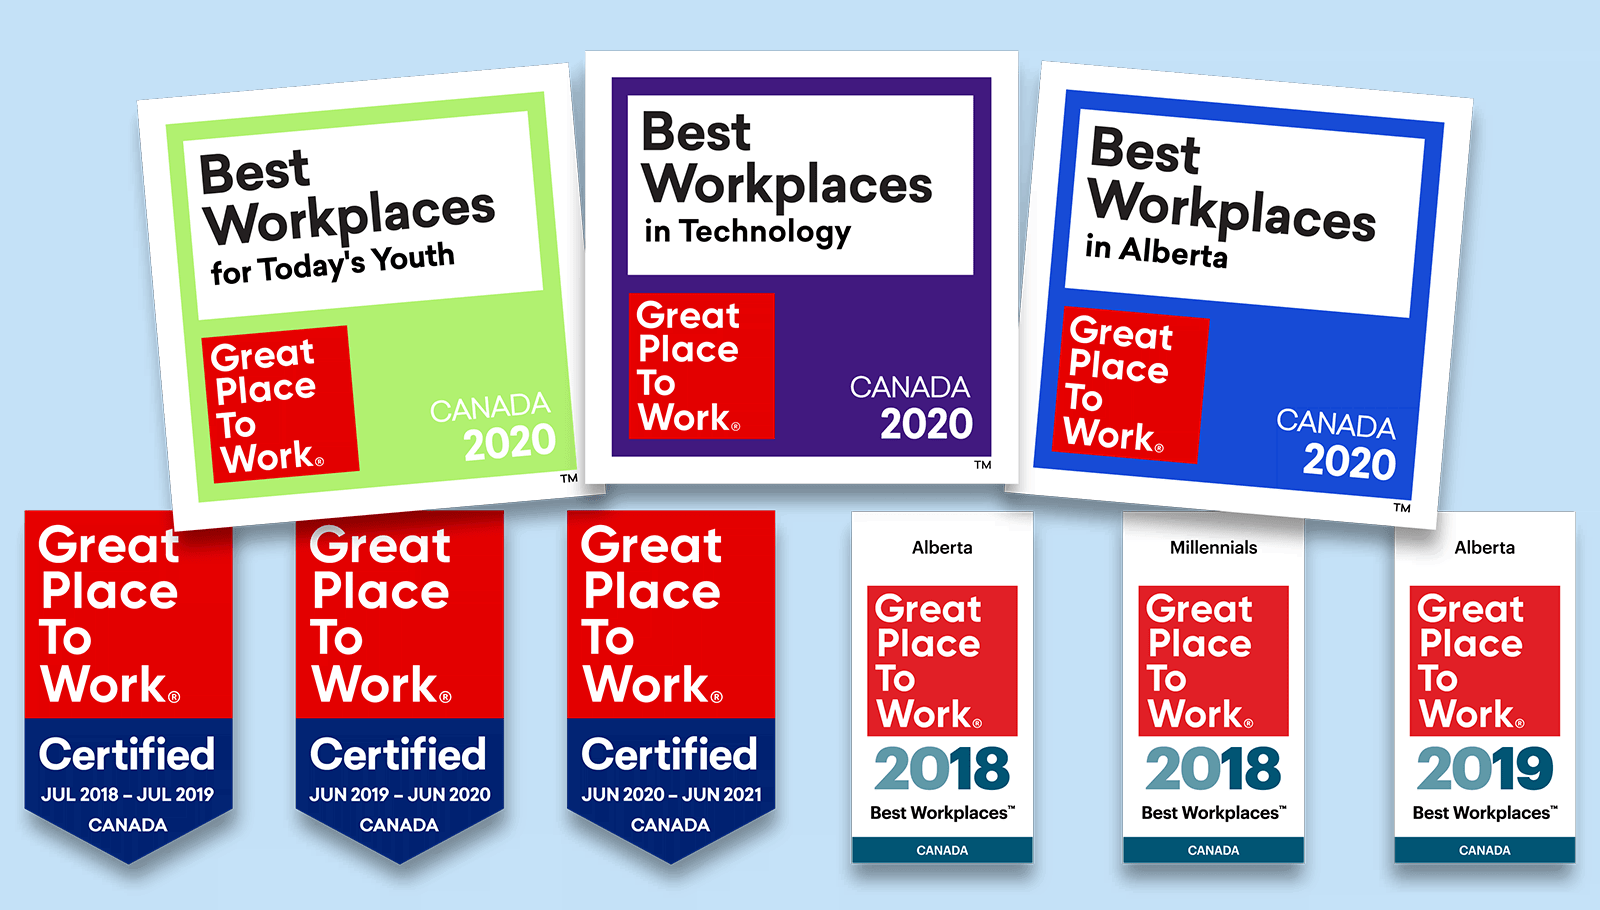 Great Place to Work logos